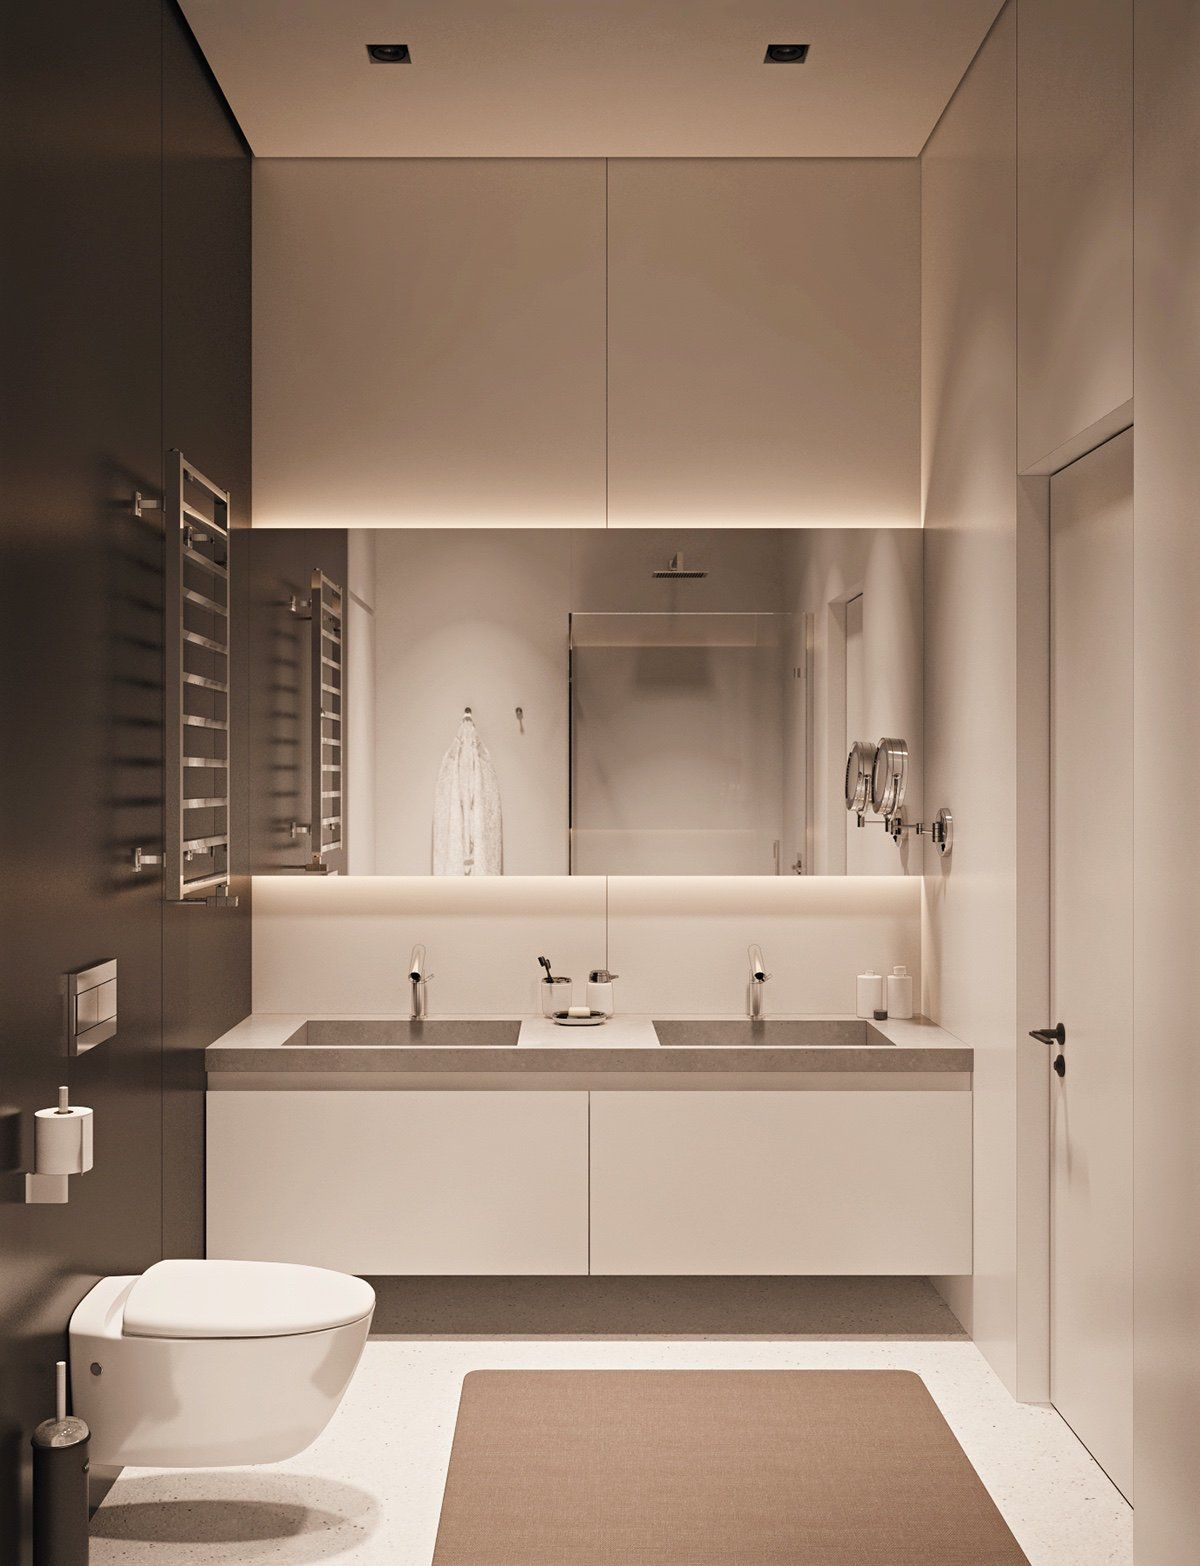 Small Space Luxury Three Modern Apartments Under 40 Square Metres That Ooze Class Minimalist Bathroom Inspiration Minimalist Bathroom Design Modern Luxury Bathroom